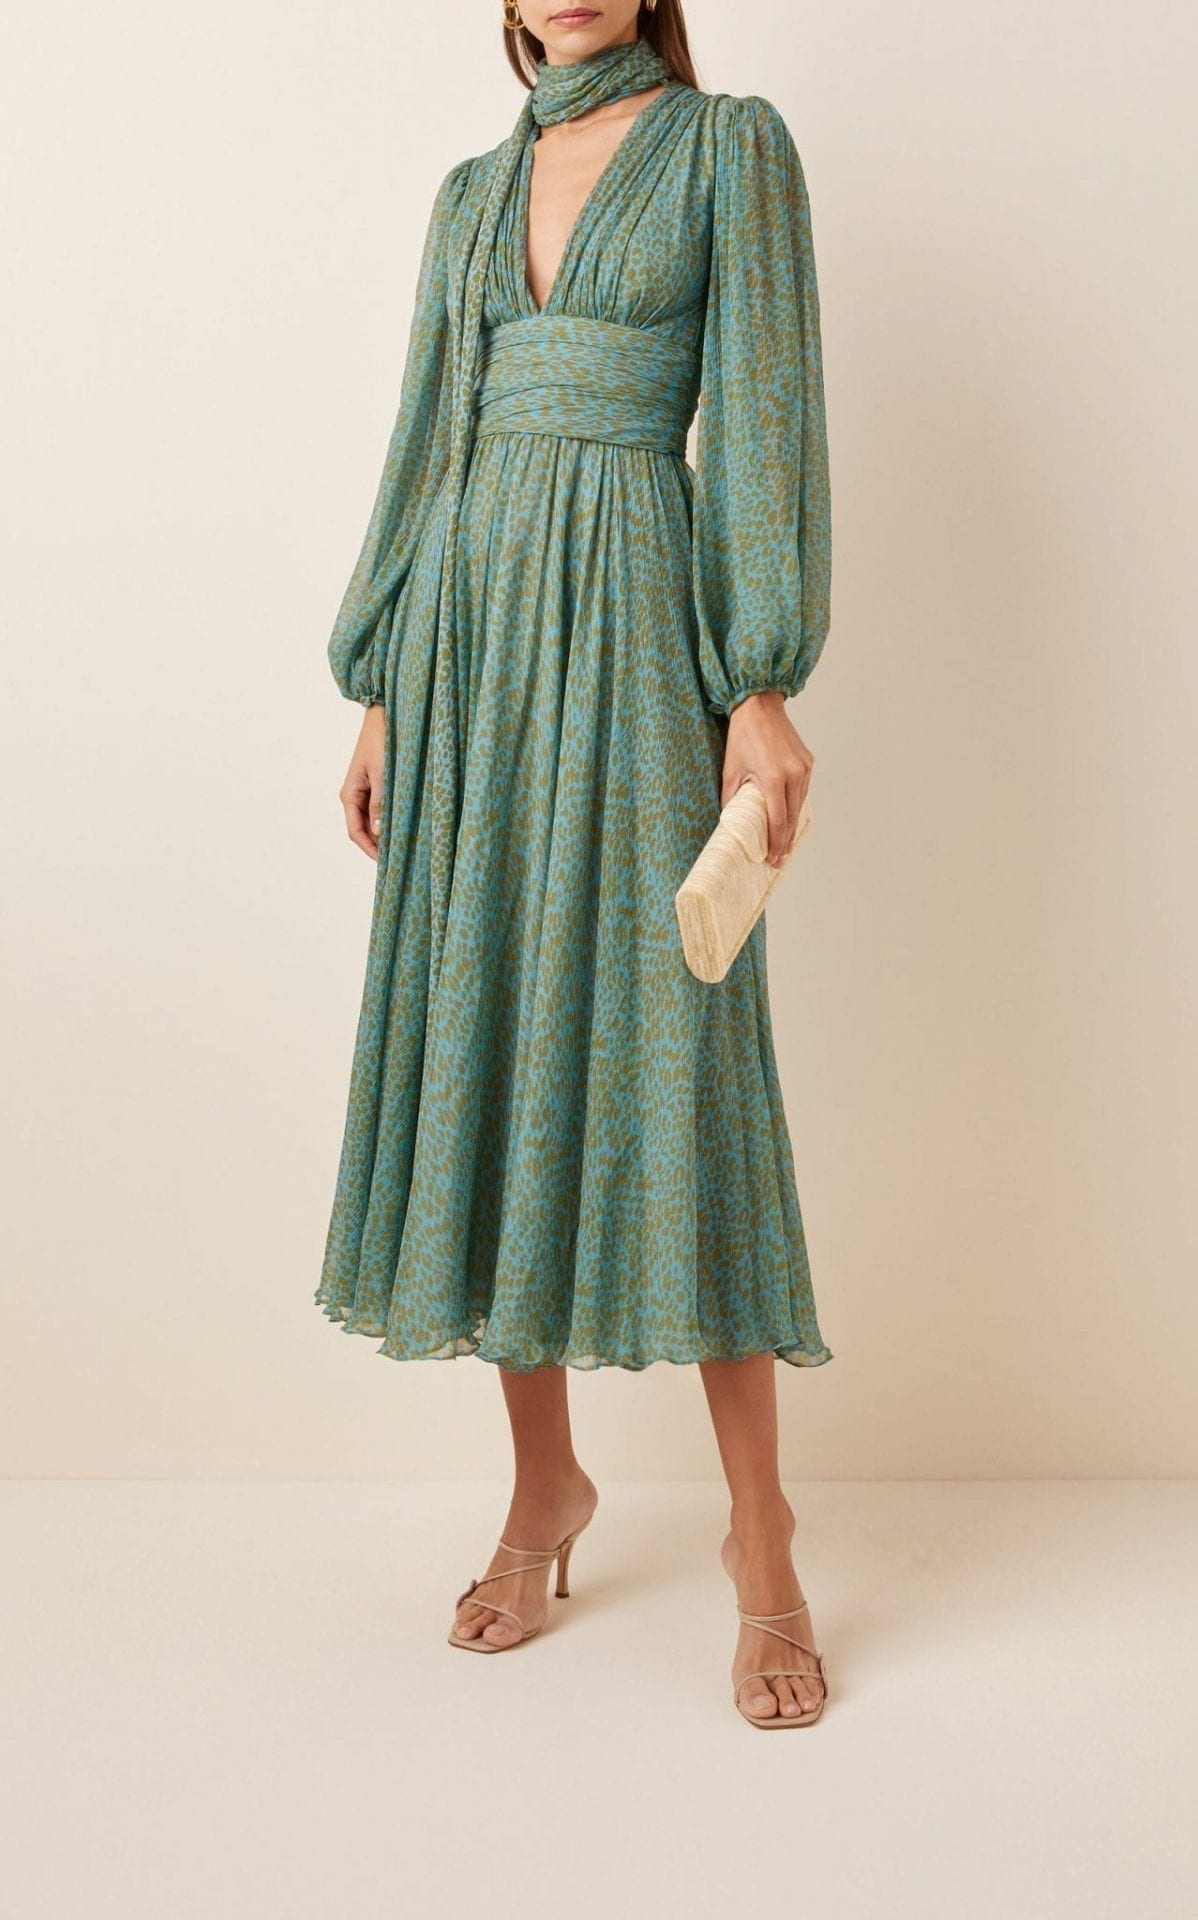 LUISA BECCARIA Printed Silk Chiffon Tie-Neck Midi Dress